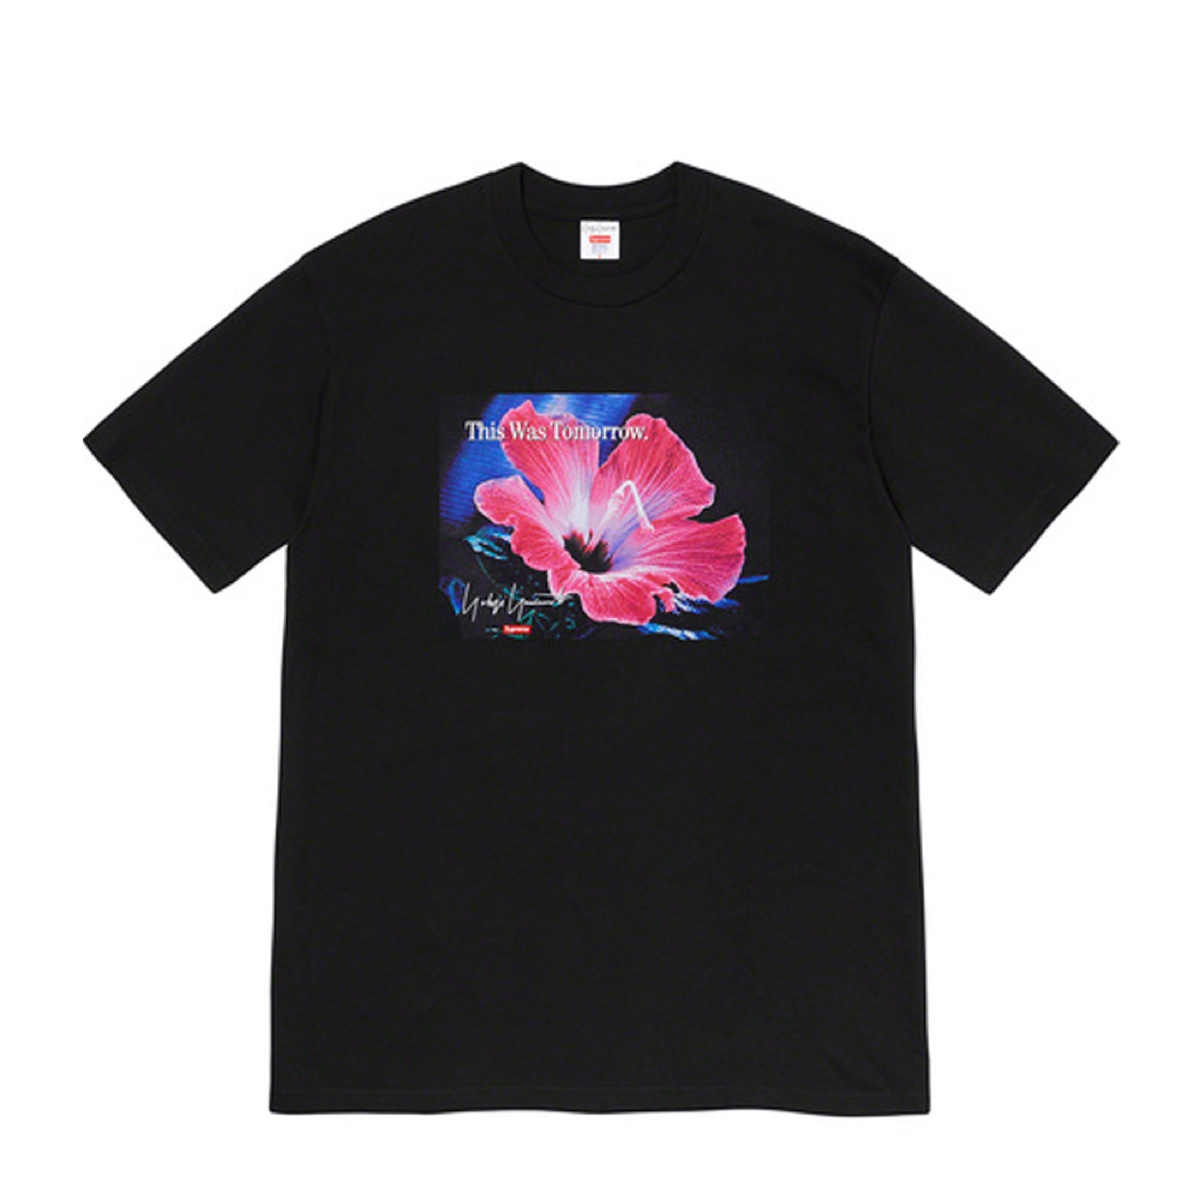 Supreme Yohji Yamamoto This Was Tomorrow Tee Black